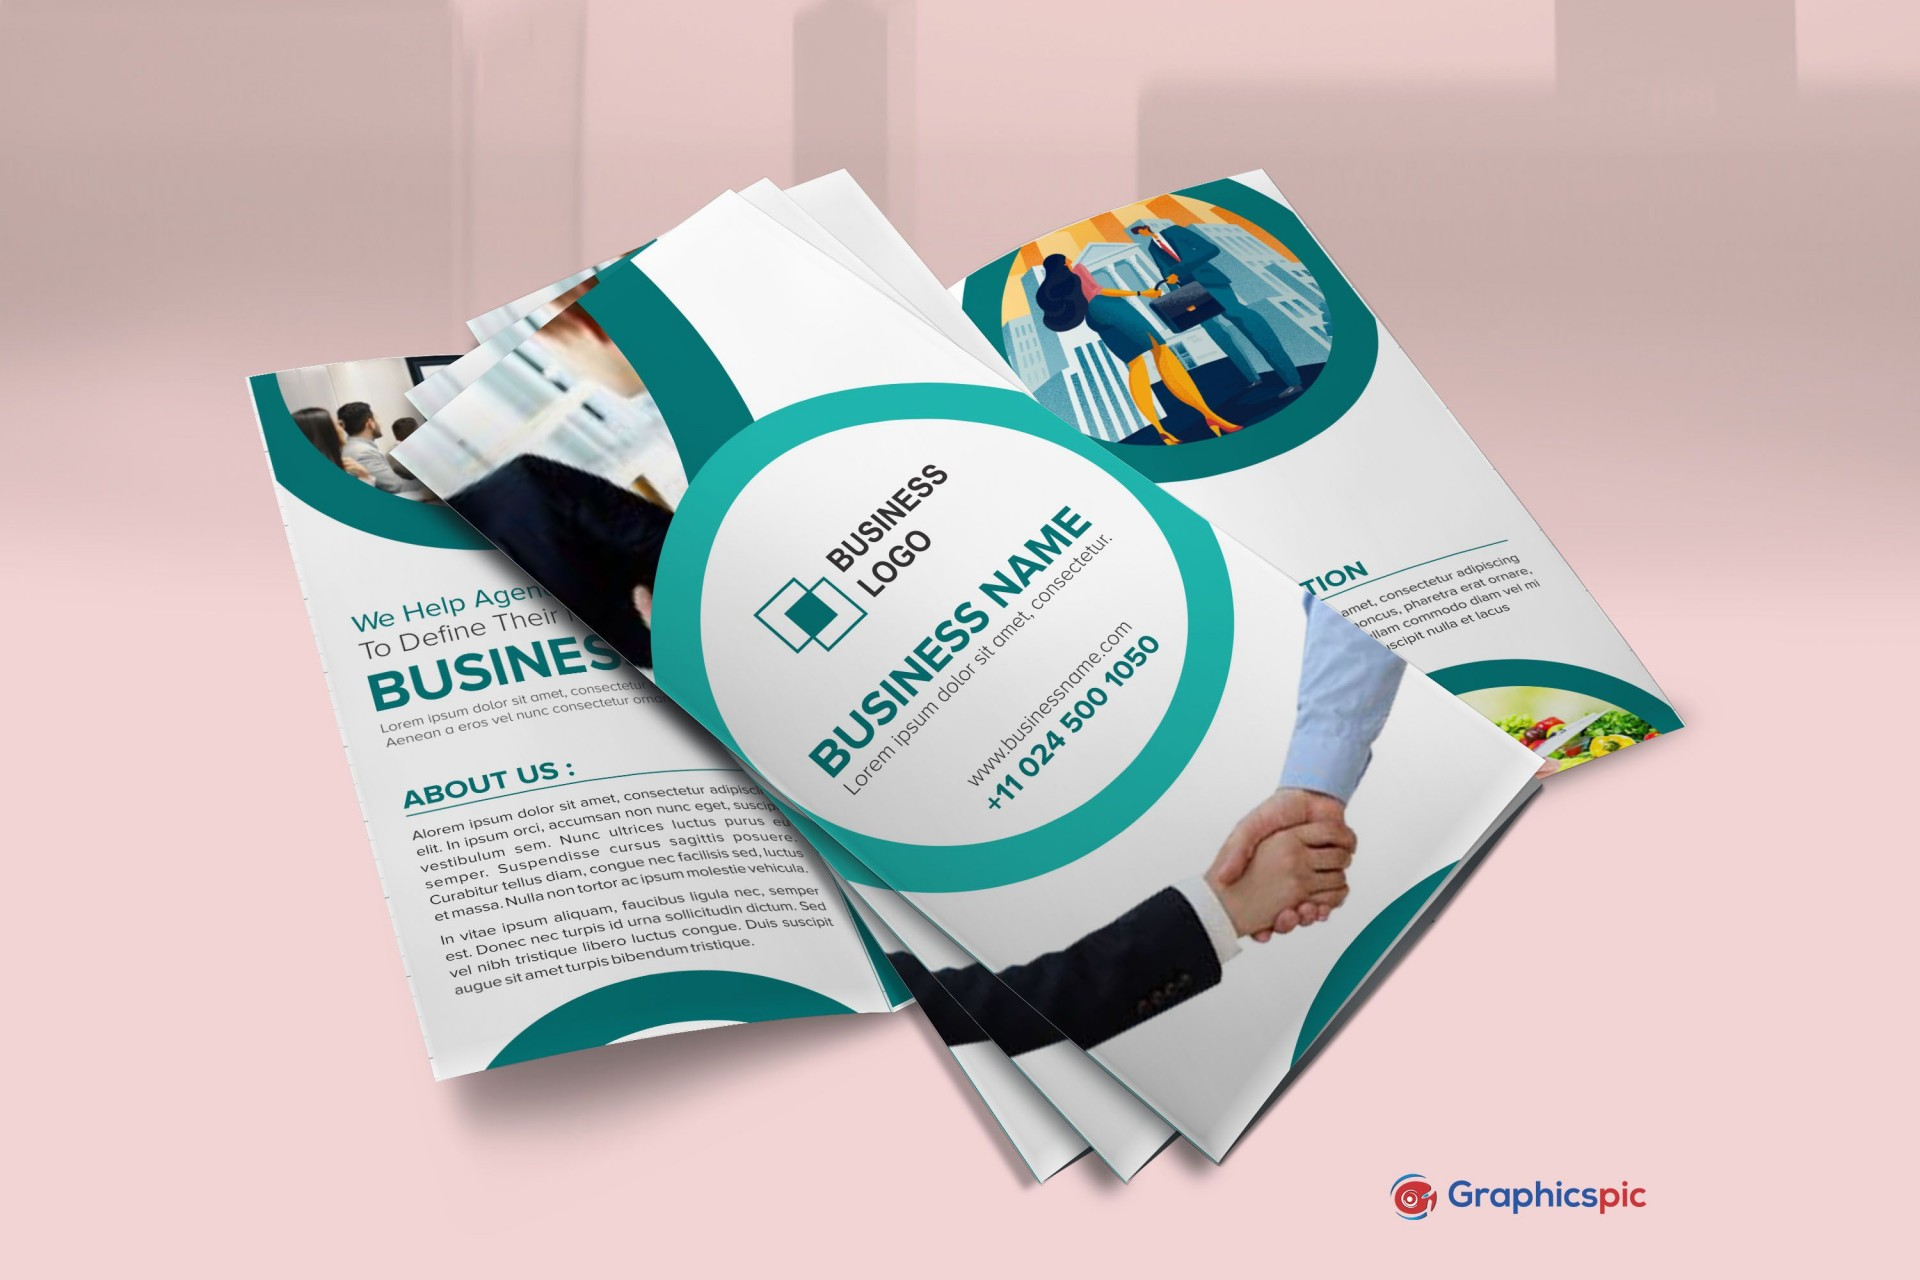 010 Surprising Free Print Ad Template Sample  Templates Real Estate For Word1920